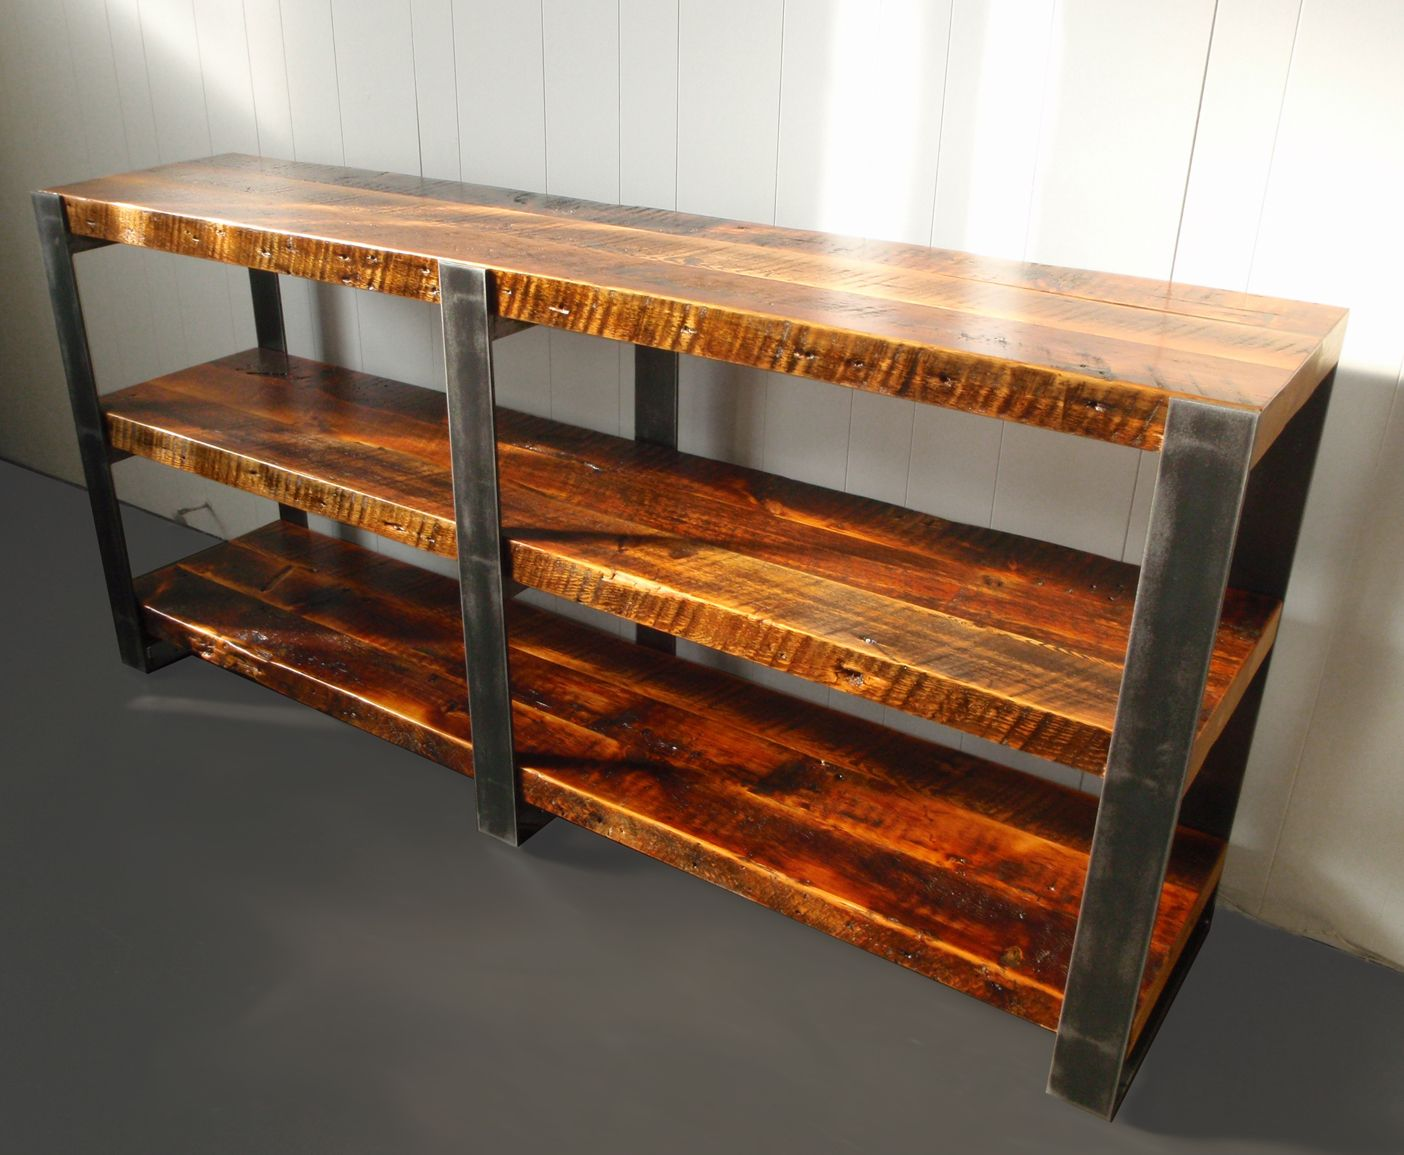 welding in a wooden structure yahoo image search results wood and metal pinterest resin. Black Bedroom Furniture Sets. Home Design Ideas